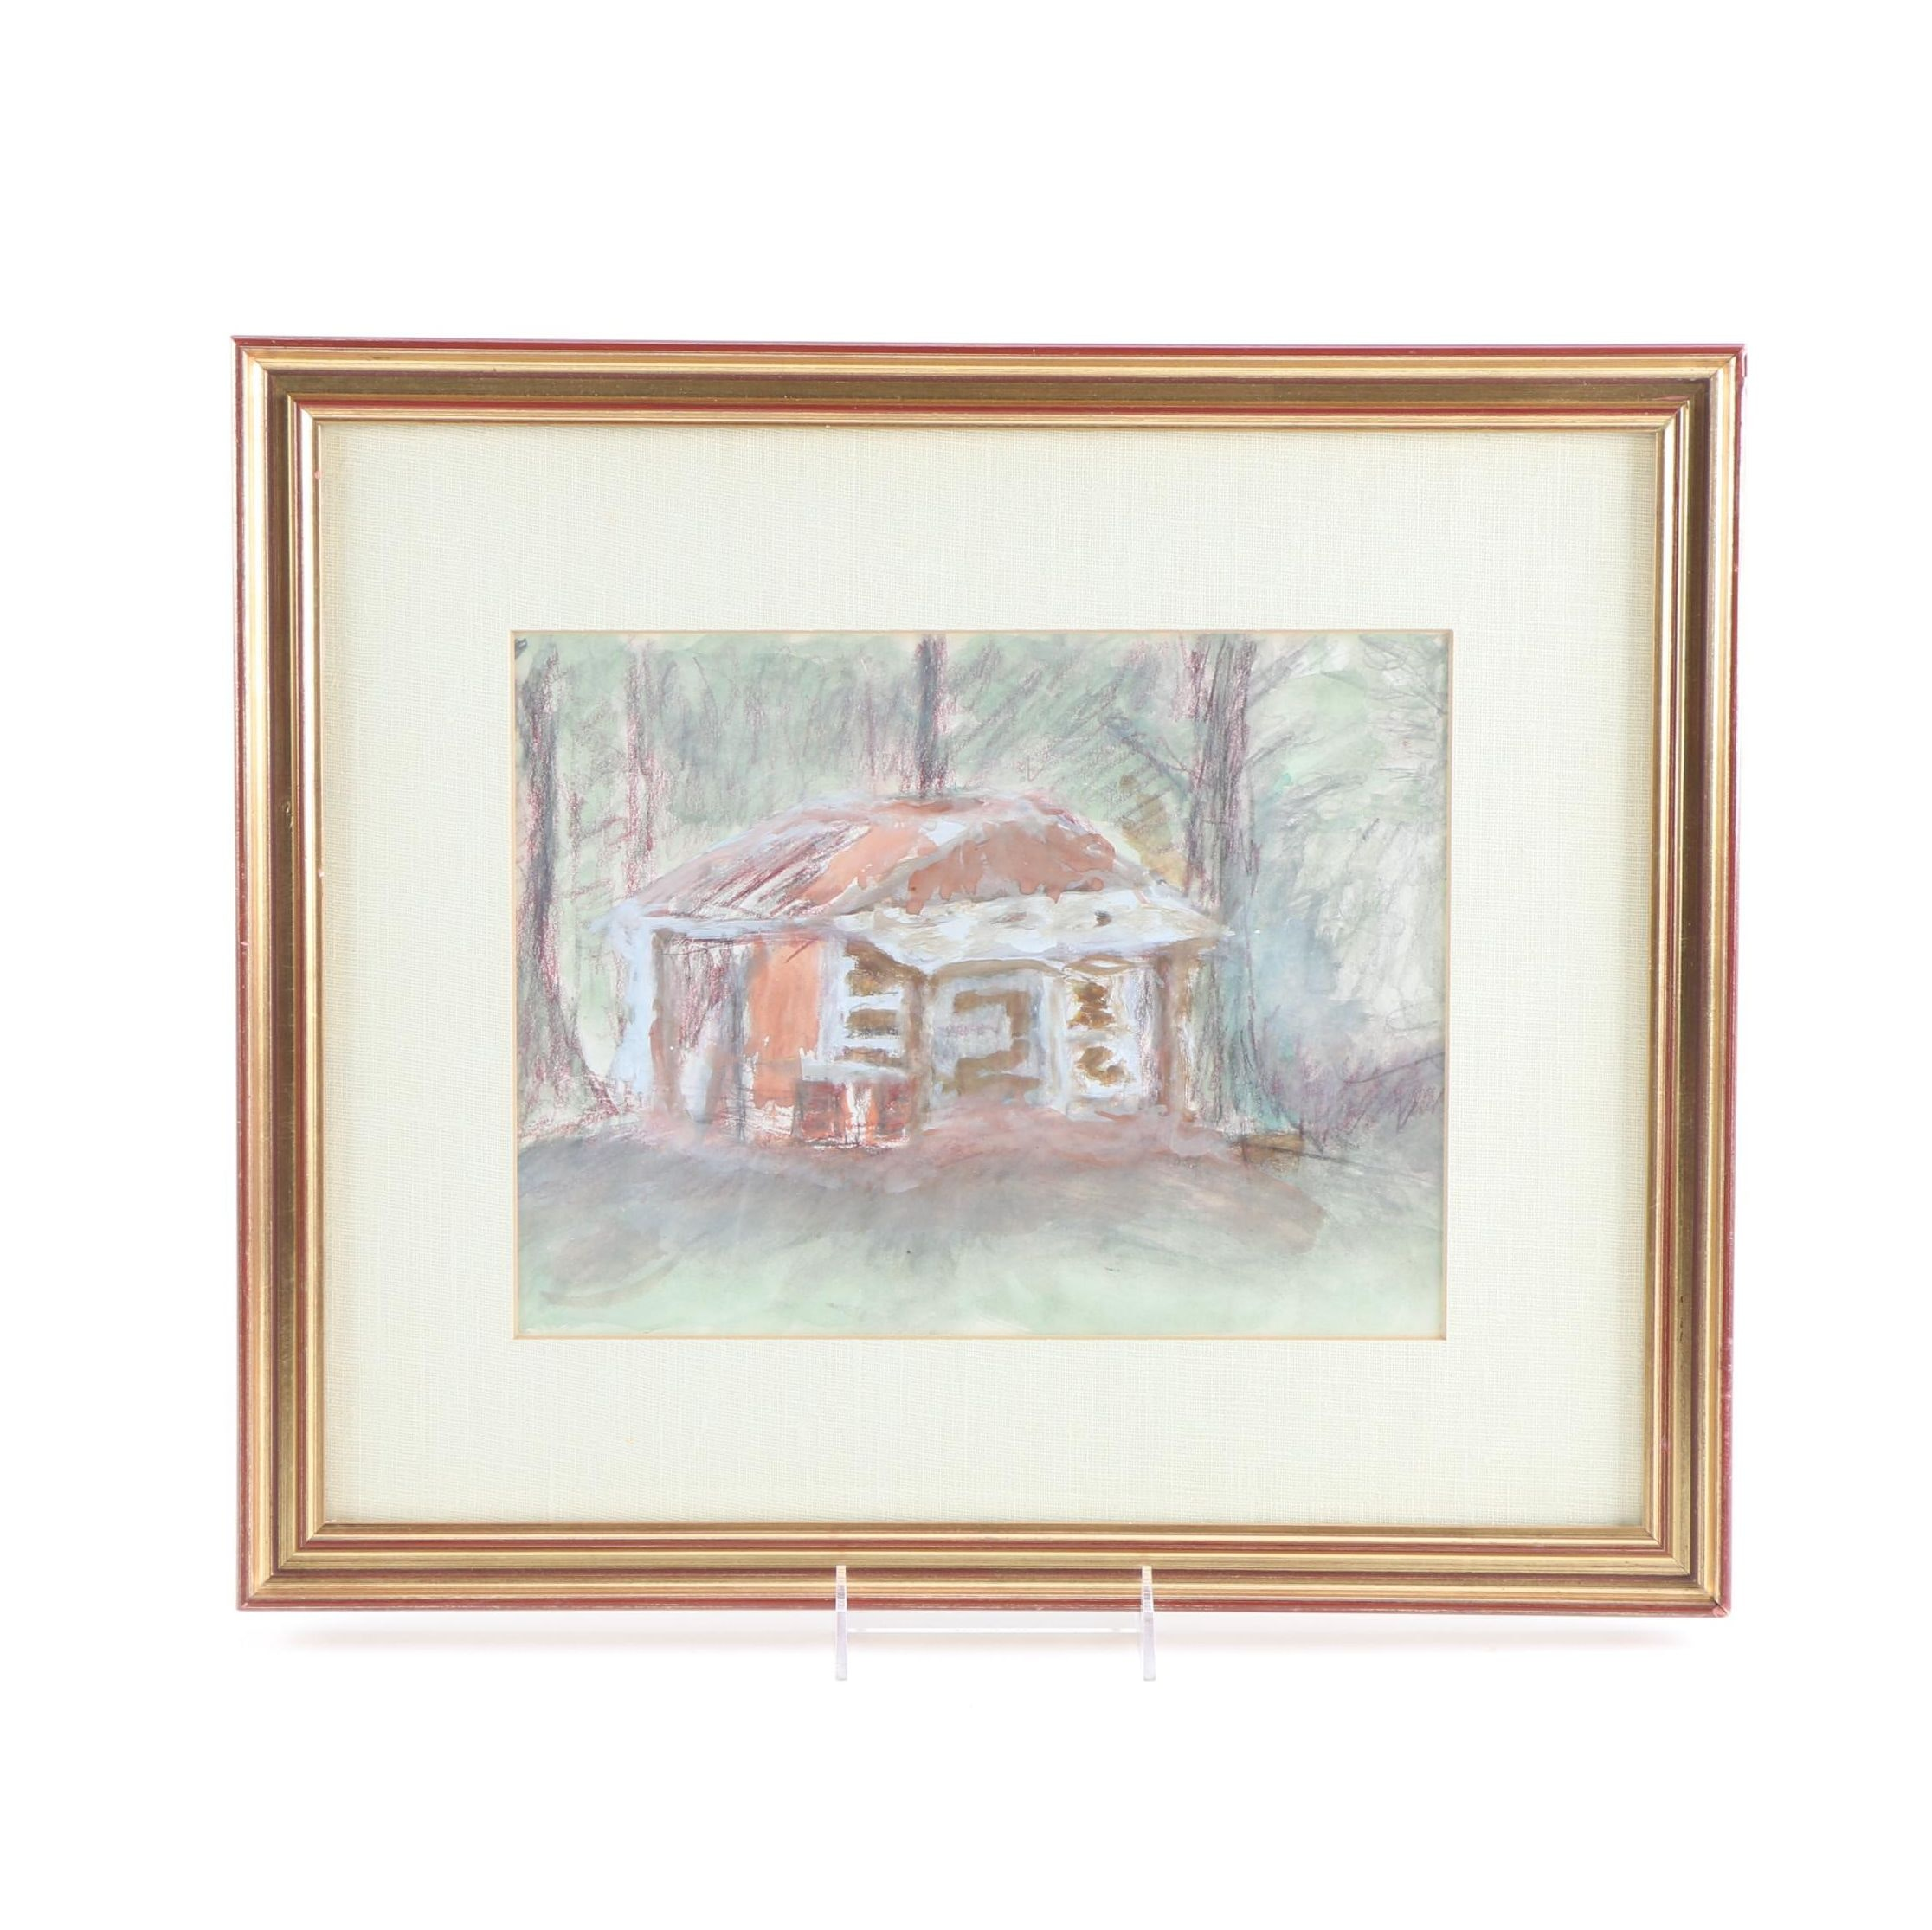 Mixed Media on Paper of a Cabin